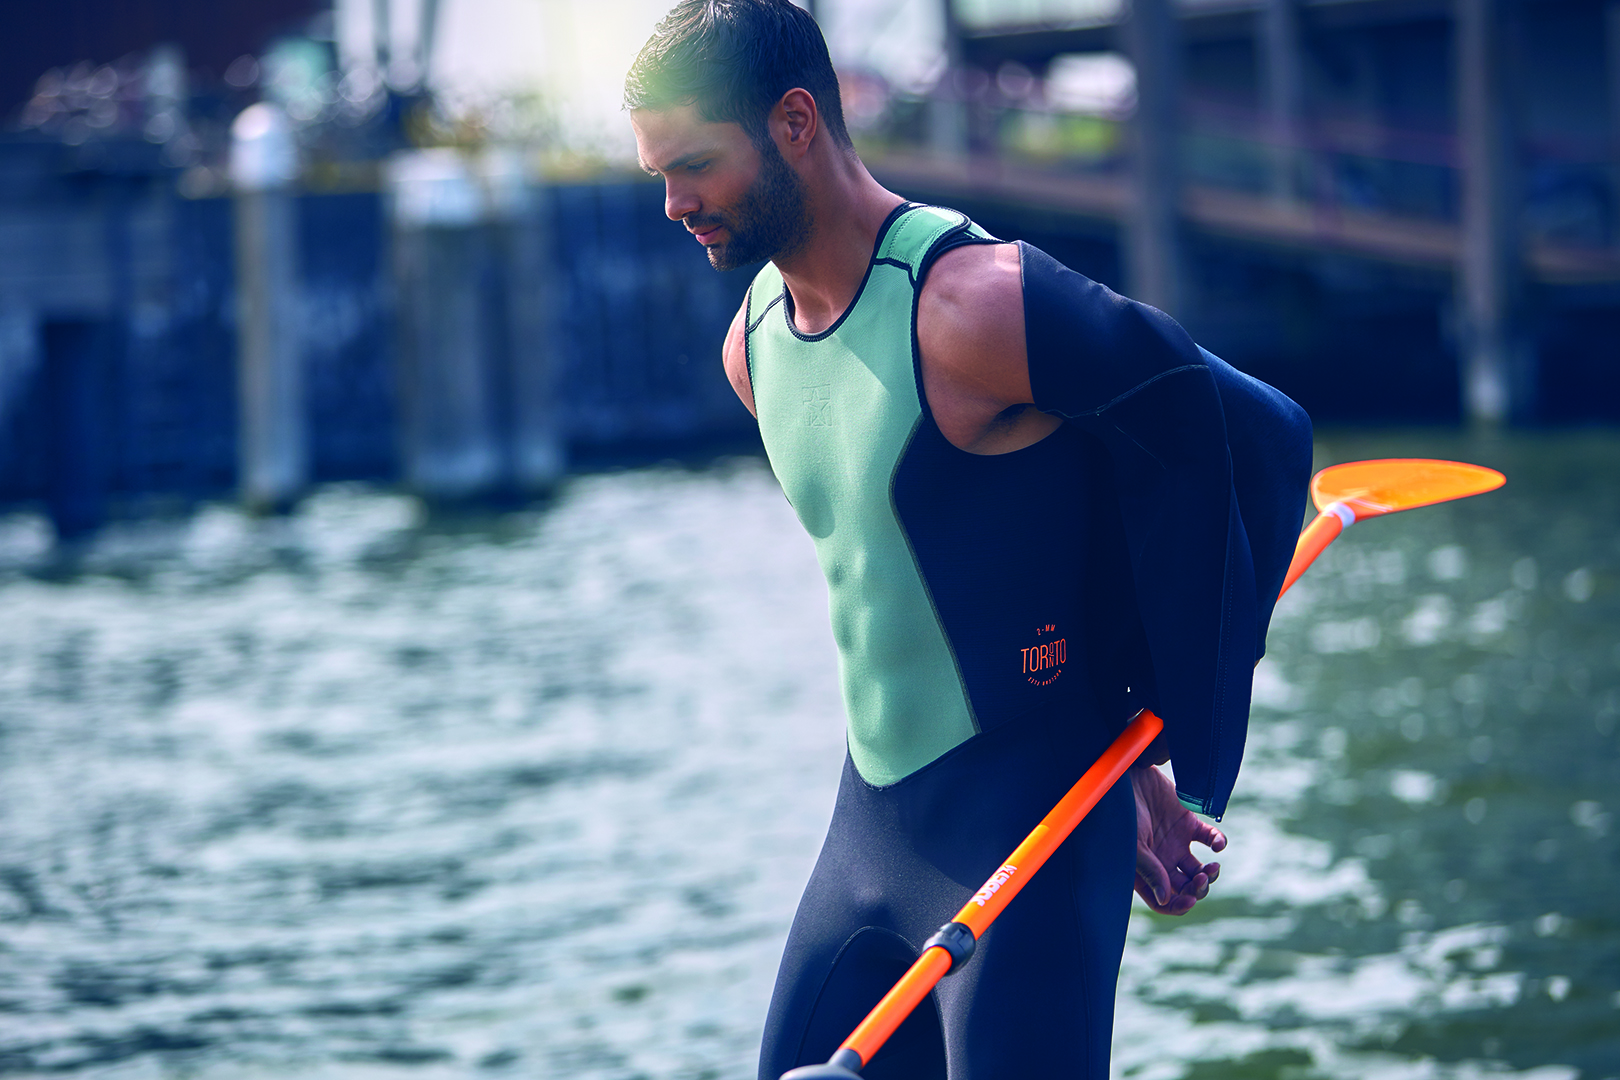 Your SUP-workout partner